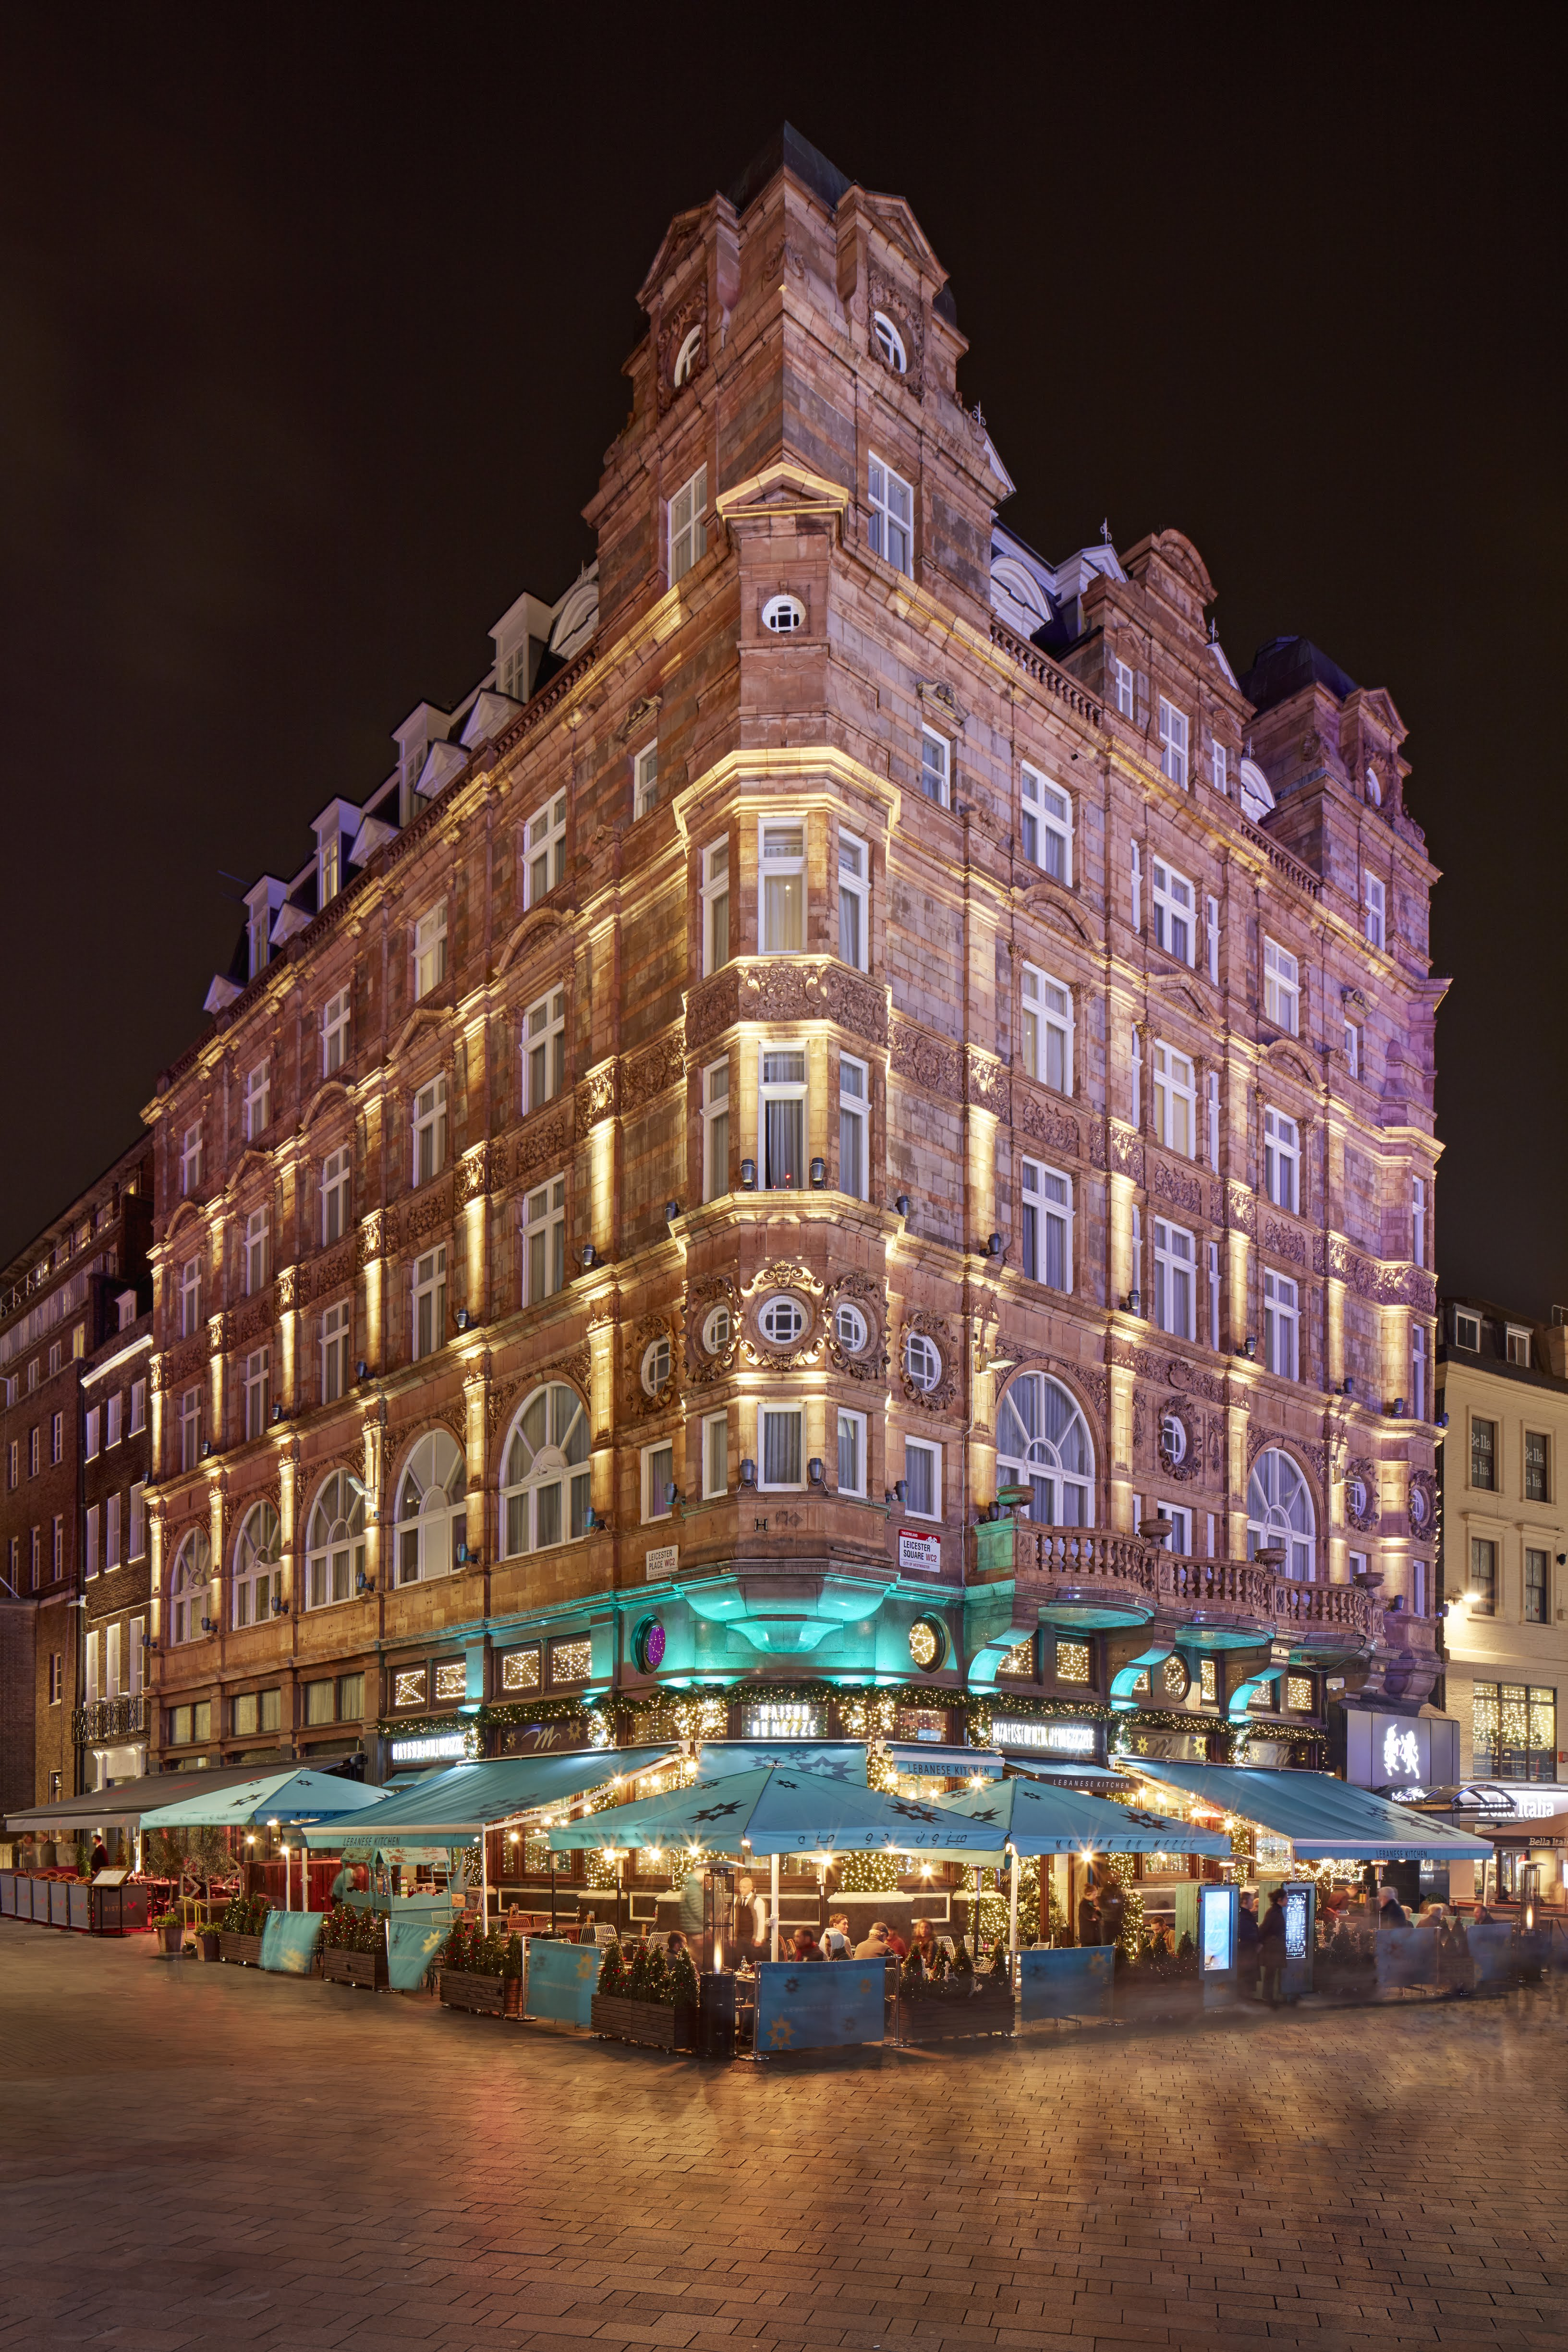 Victory House Hotel Leicester Square Review The Luxury Editor